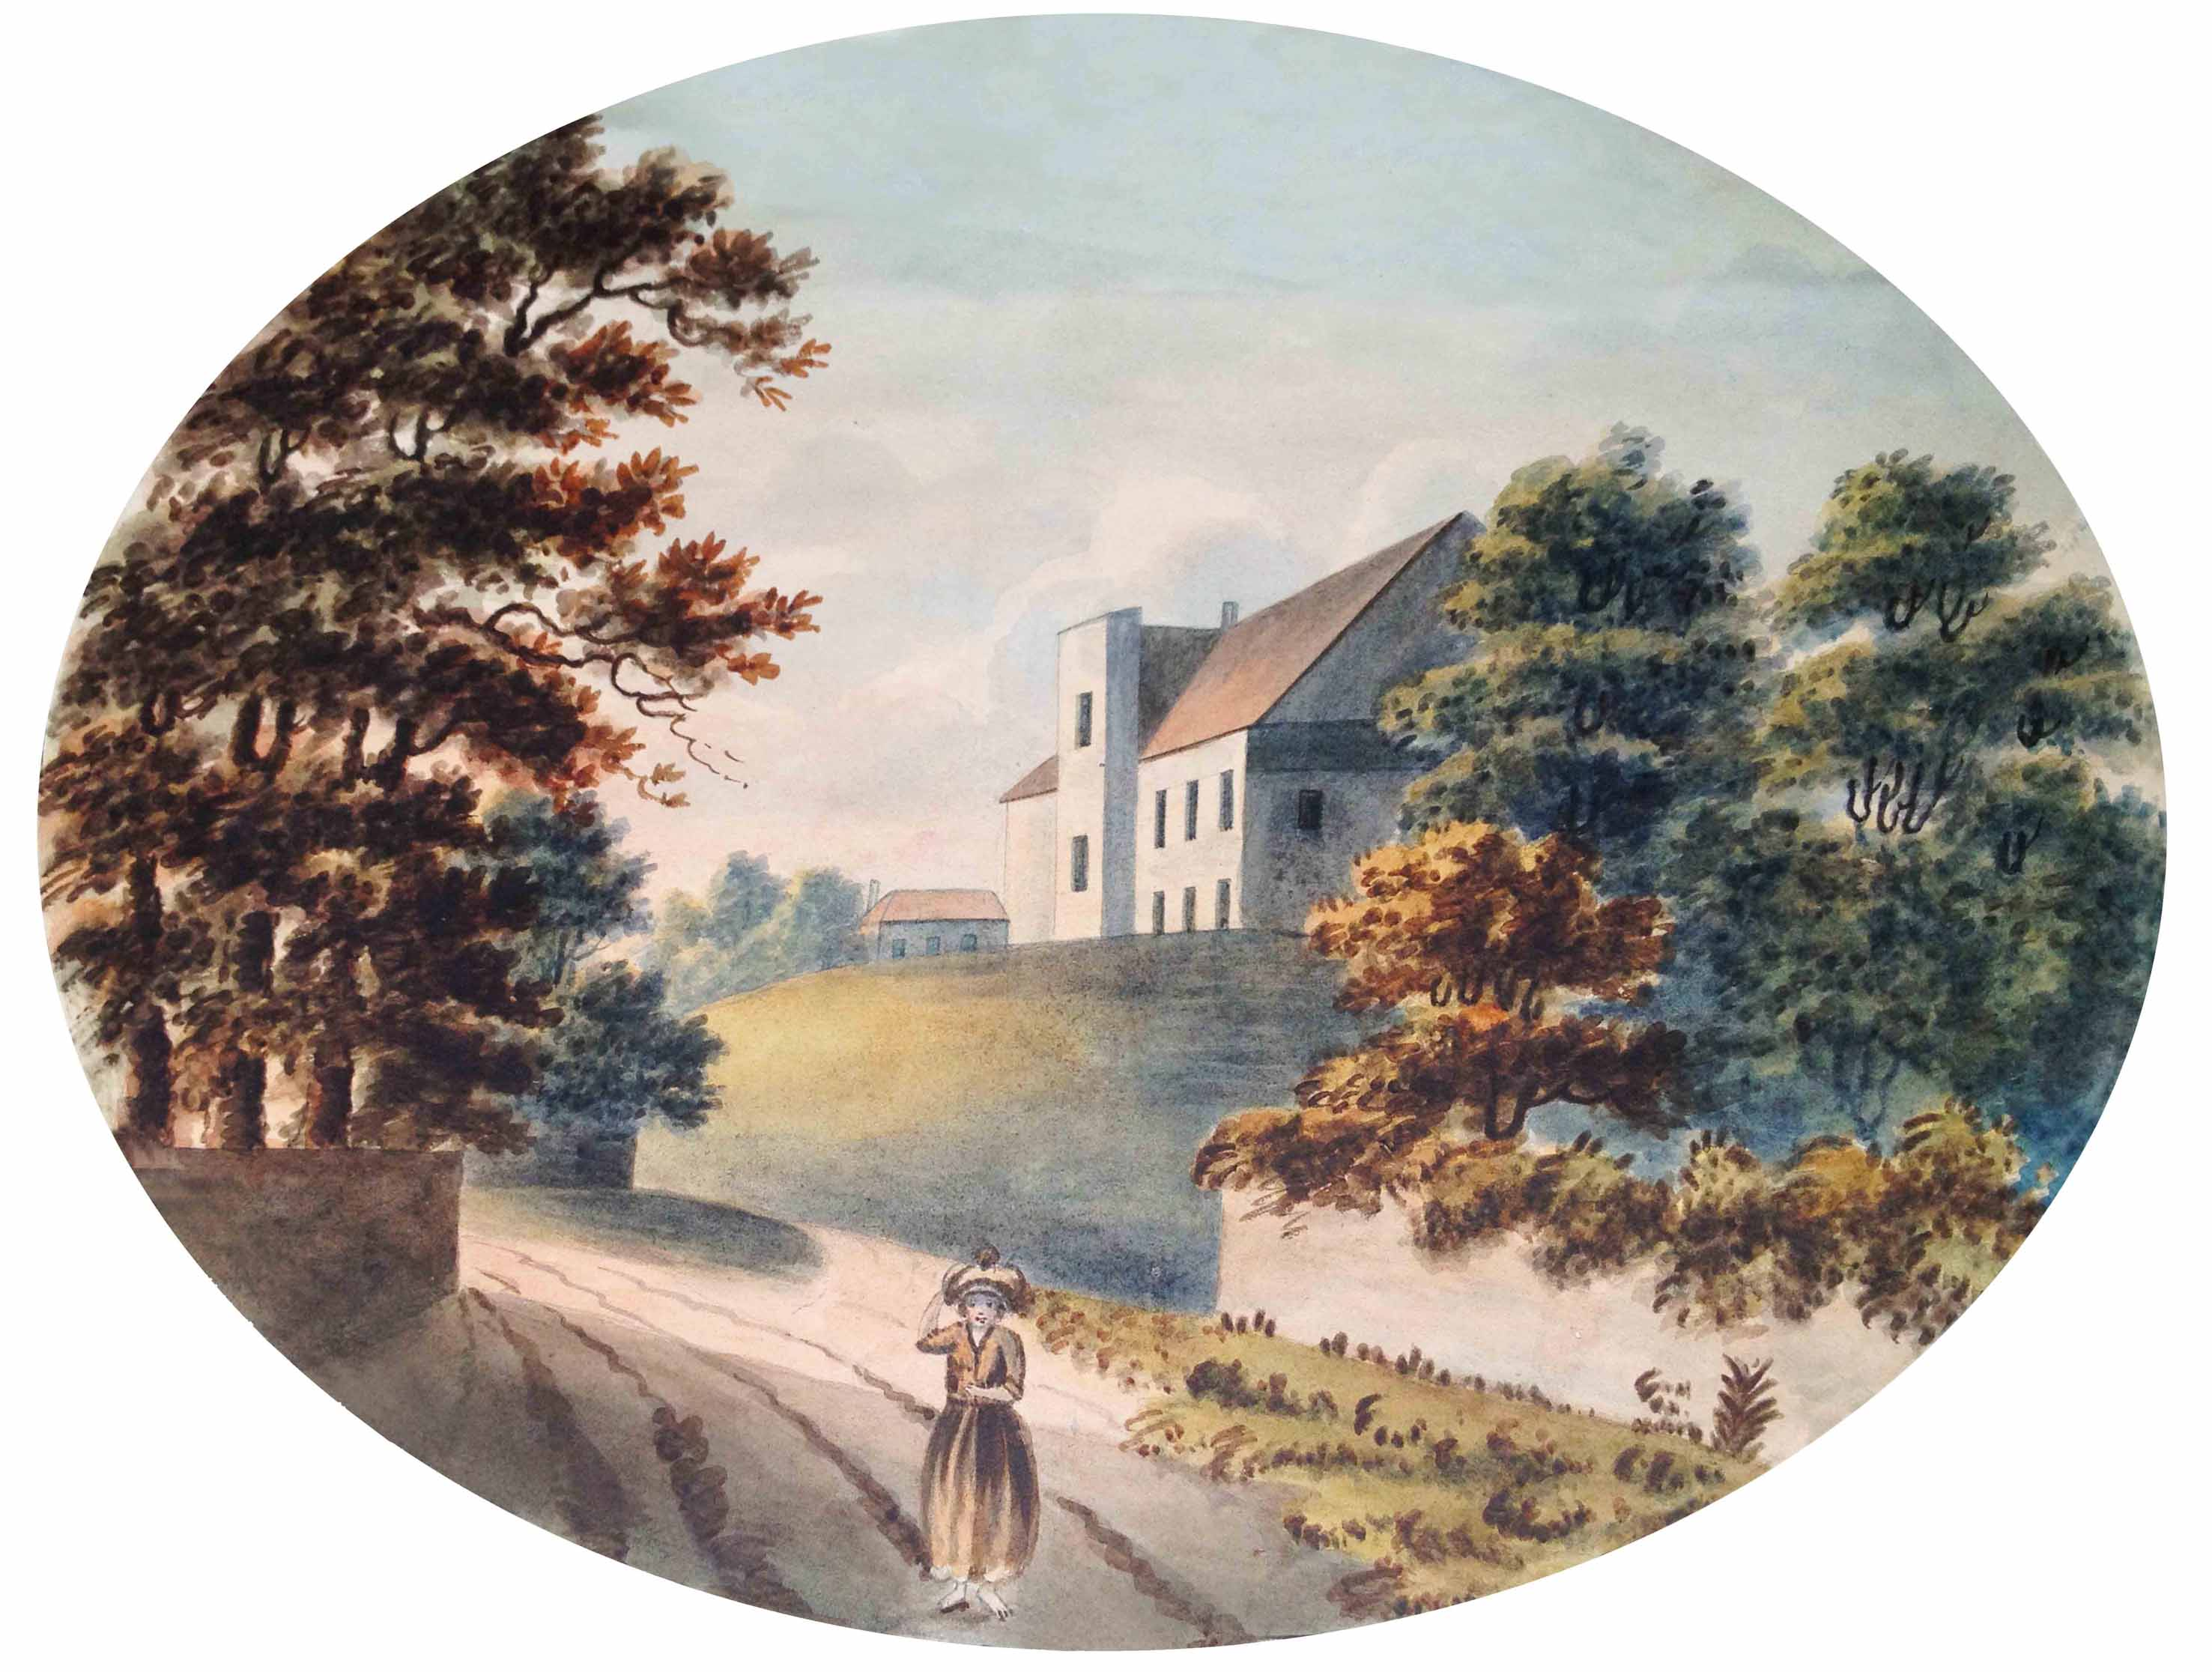 Kingsweston Inn seen from below and from the south, circa 1820.